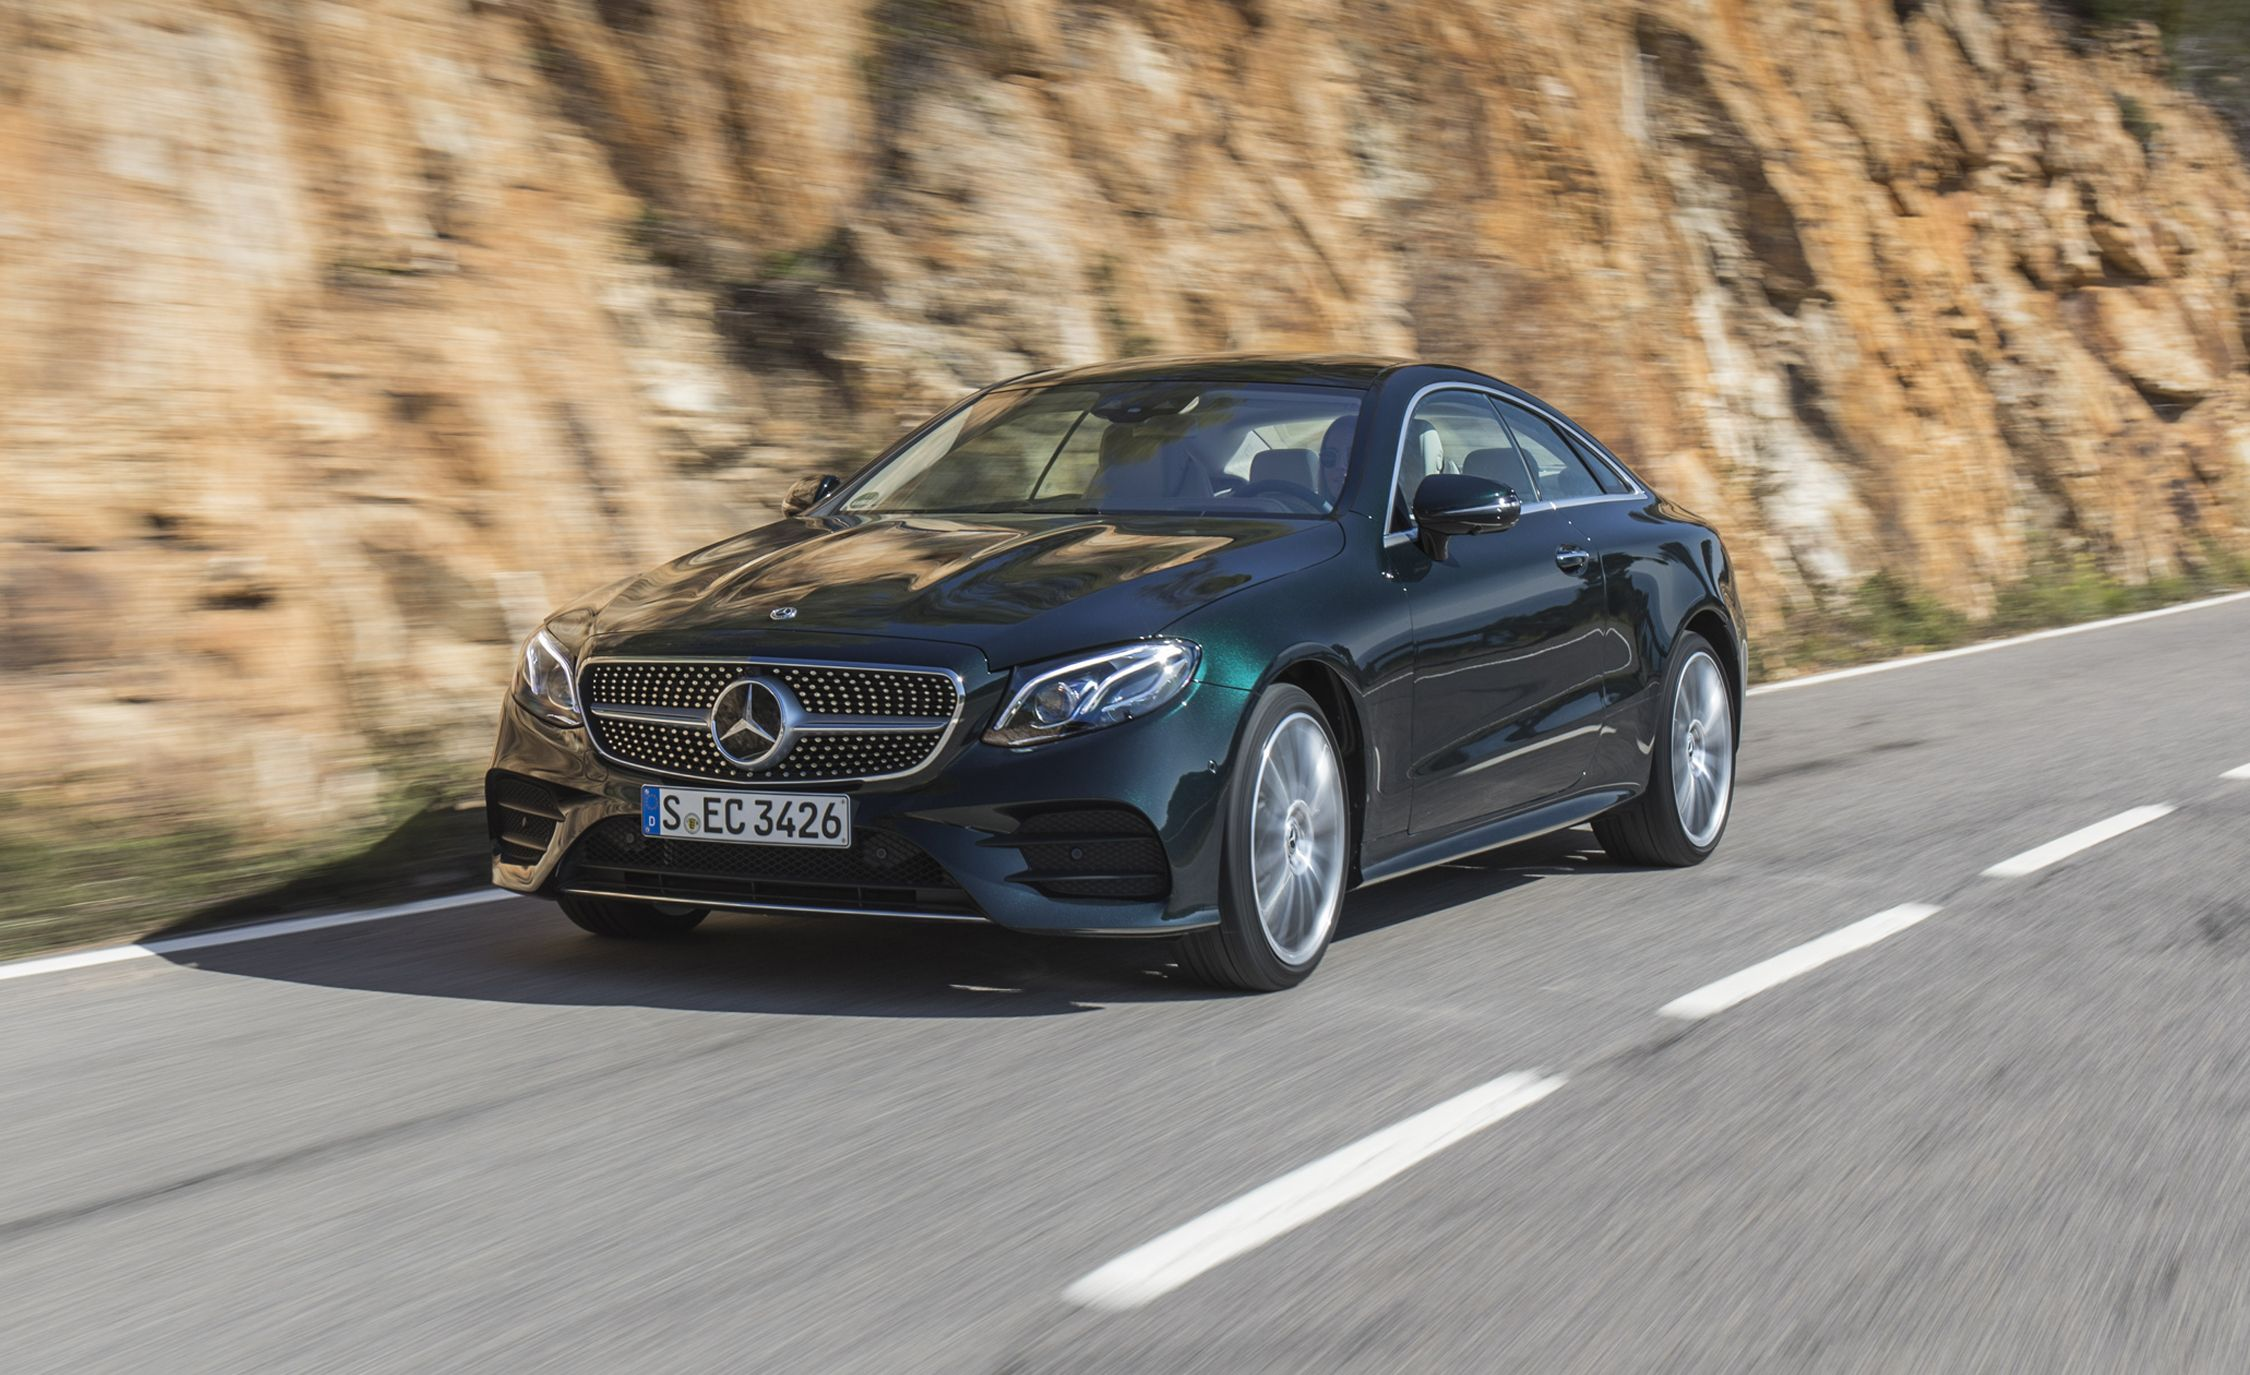 Mercedes-Benz E-Class: General notes